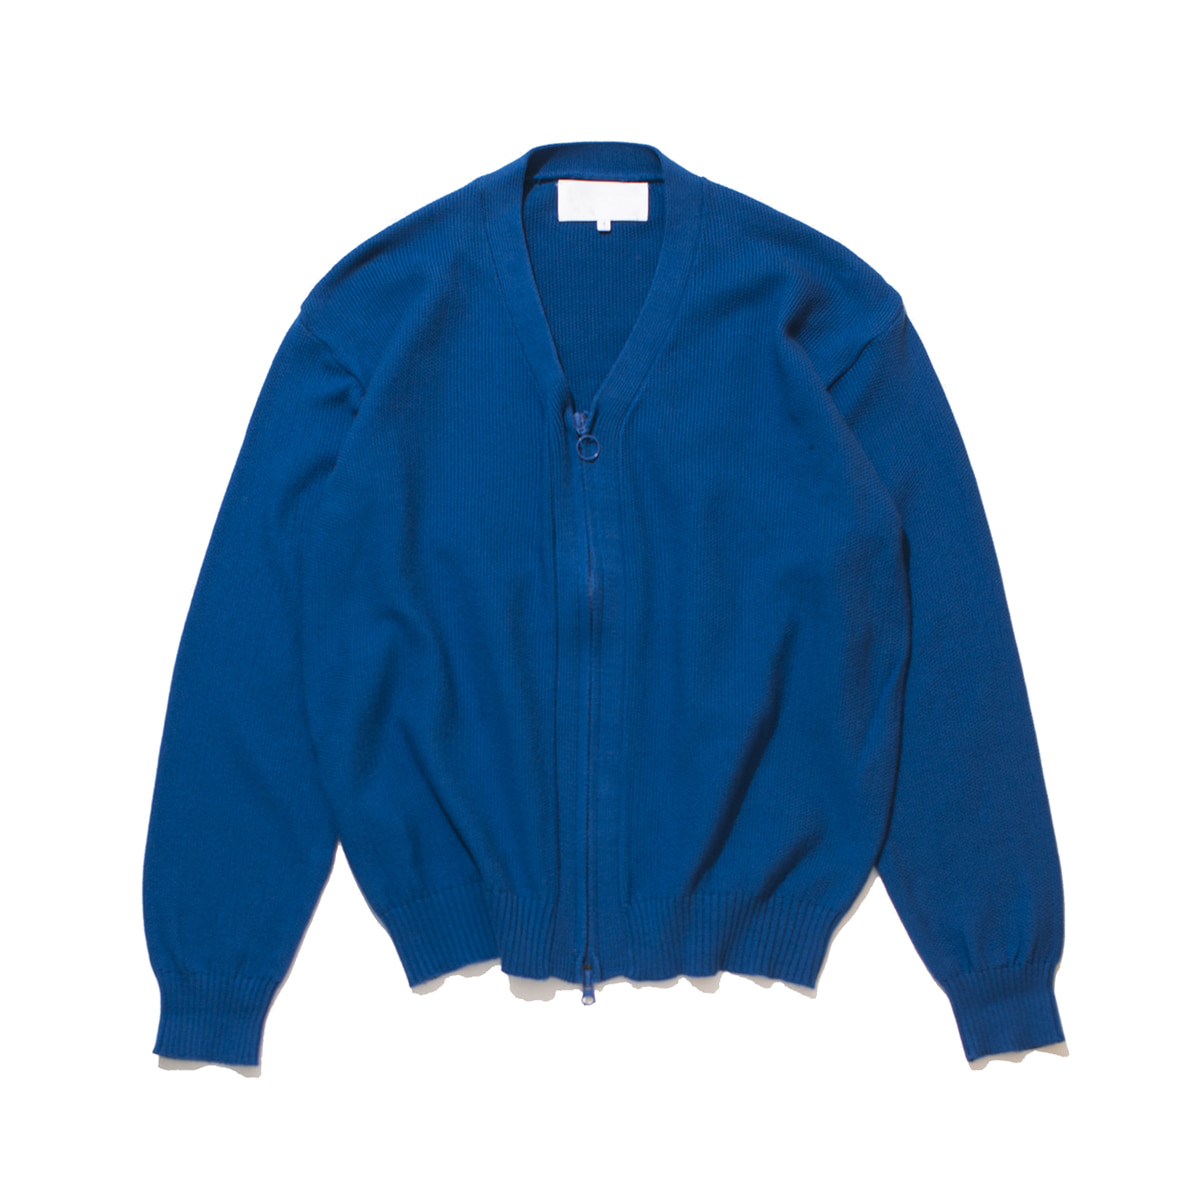 [GAKURO] ZIPPERED CARDIGAN 'BLUE'